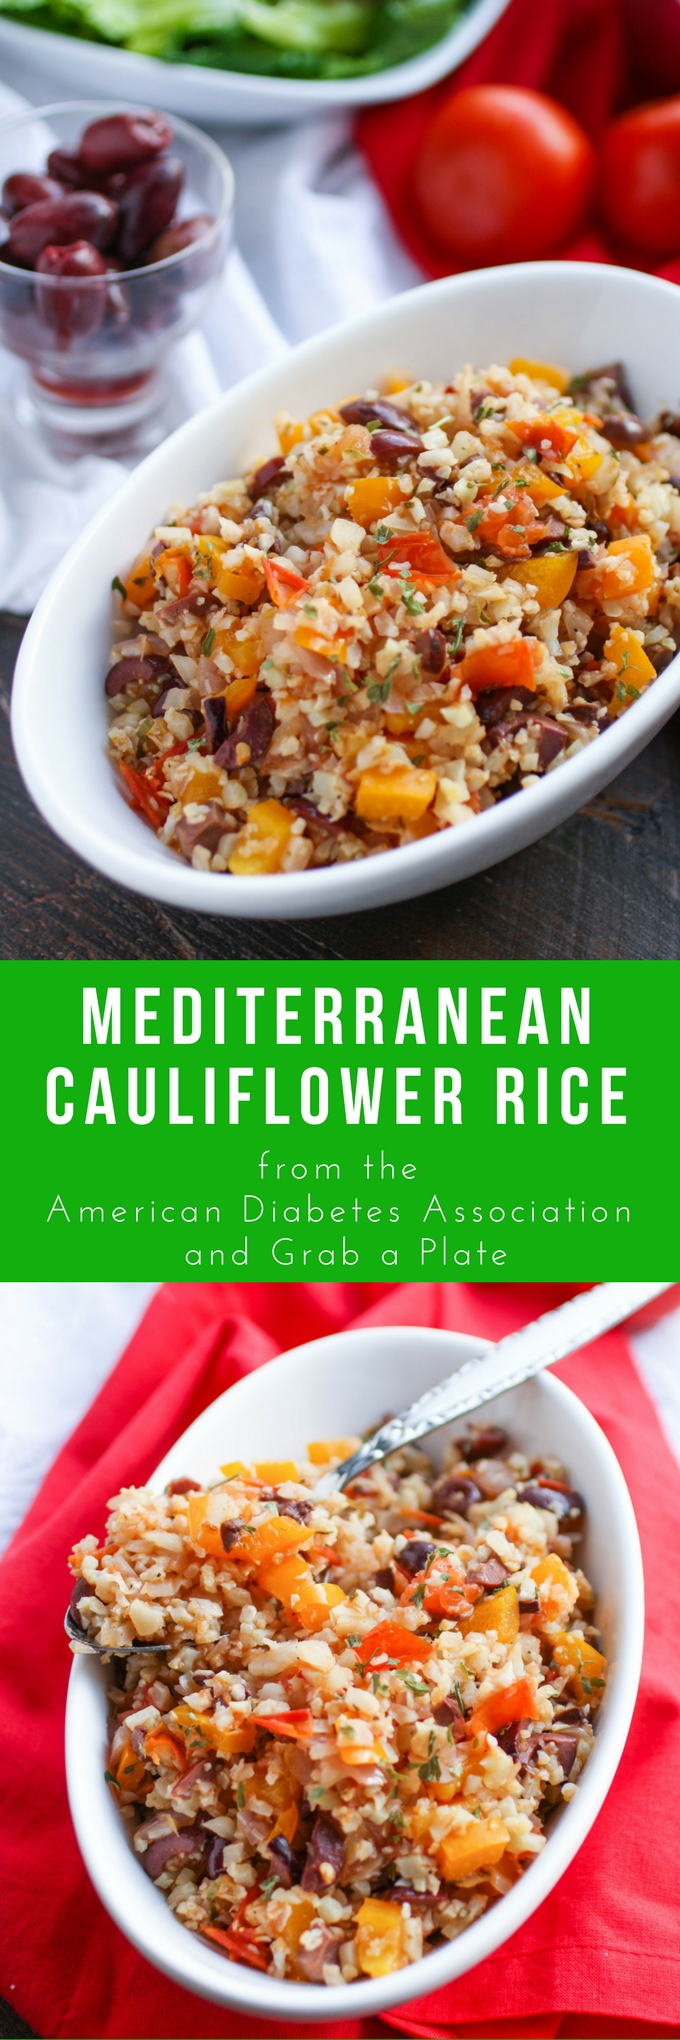 Mediterranean Cauliflower Rice is a wonderful and healthy side dish that's perfect with any meal. You'll love the flavors in this cauliflower rice dish!